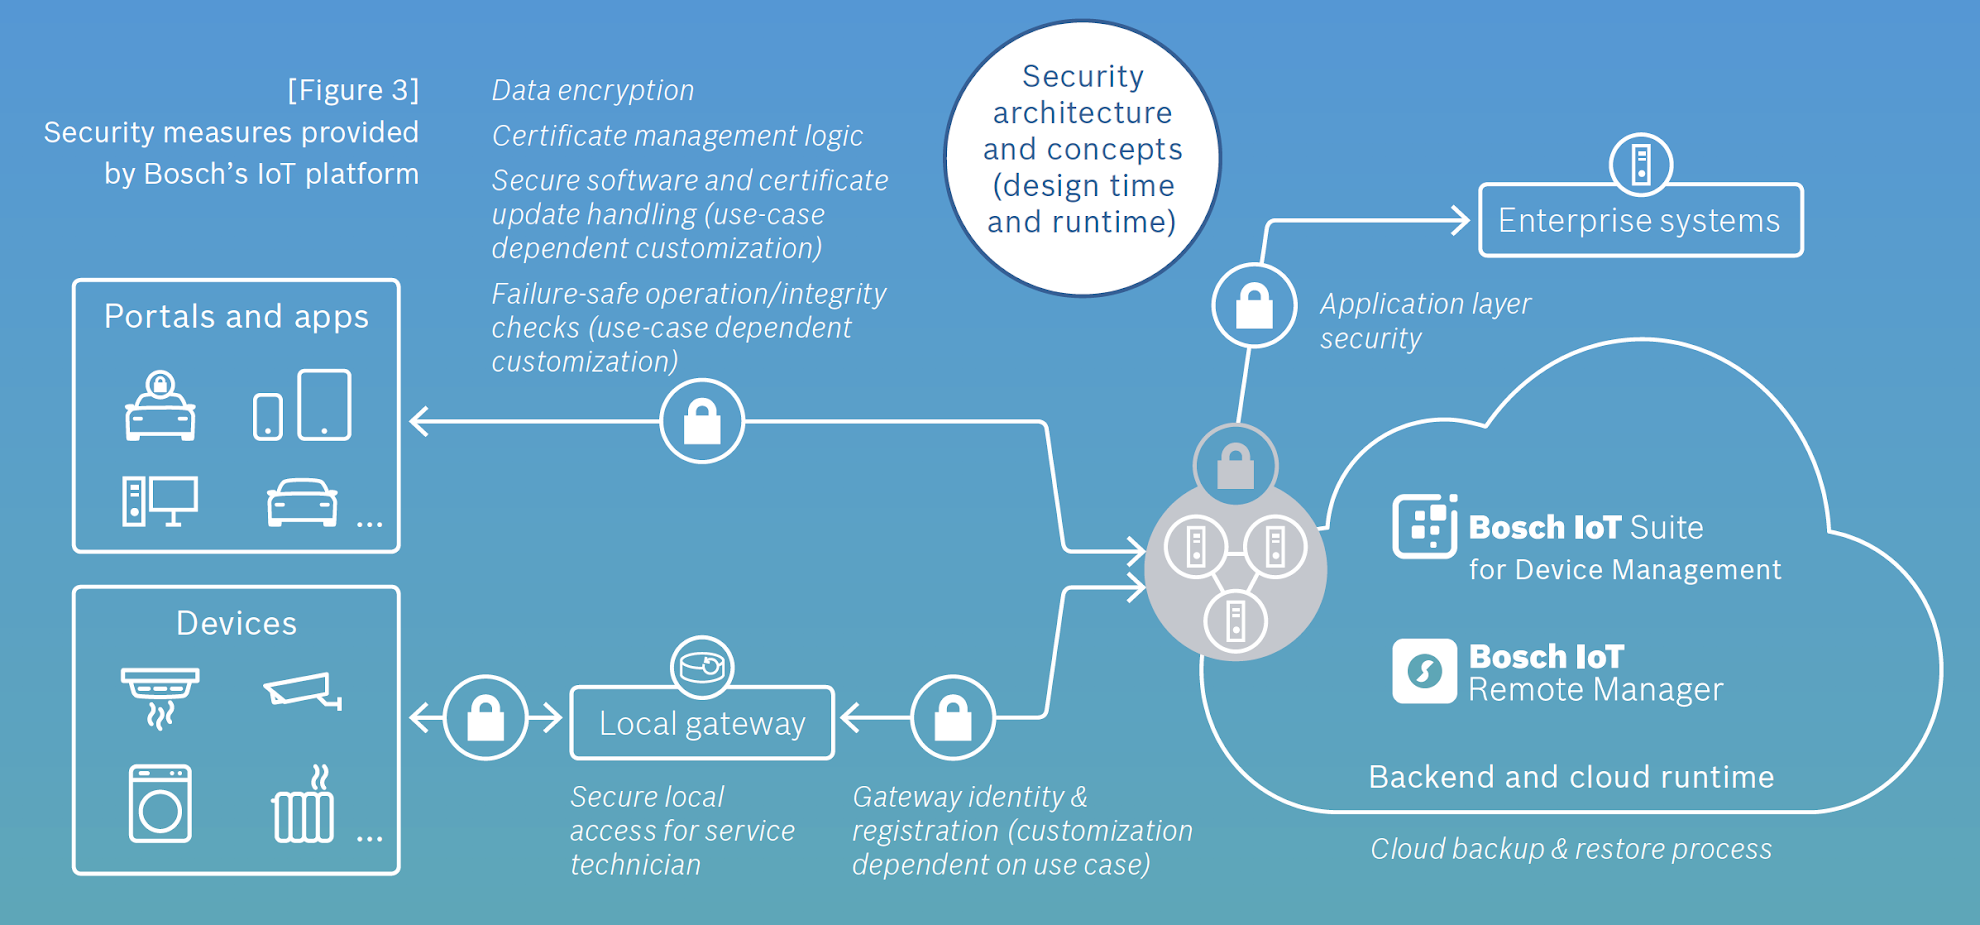 Security measures provided by Bosch's IoT platform